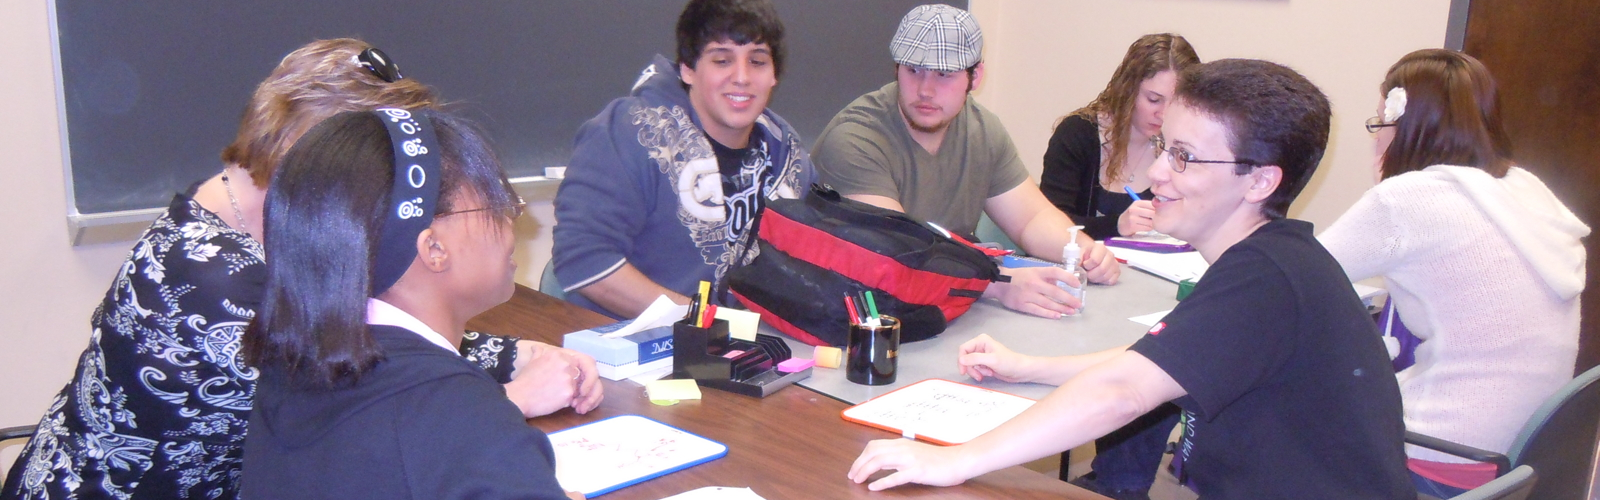 Six students around a table working on problems with an instructor